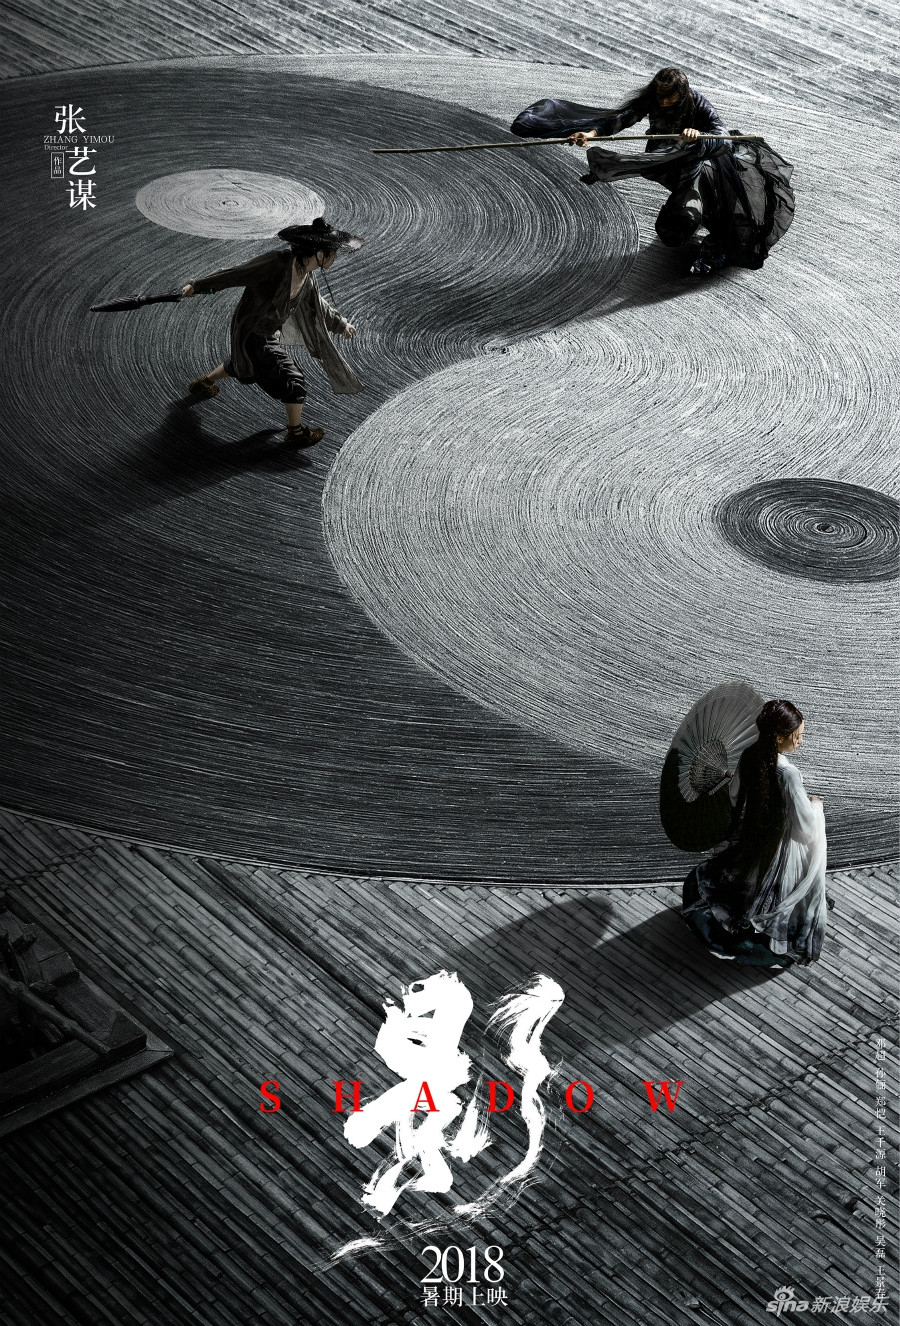 Shadow directed by Yimou Zhang